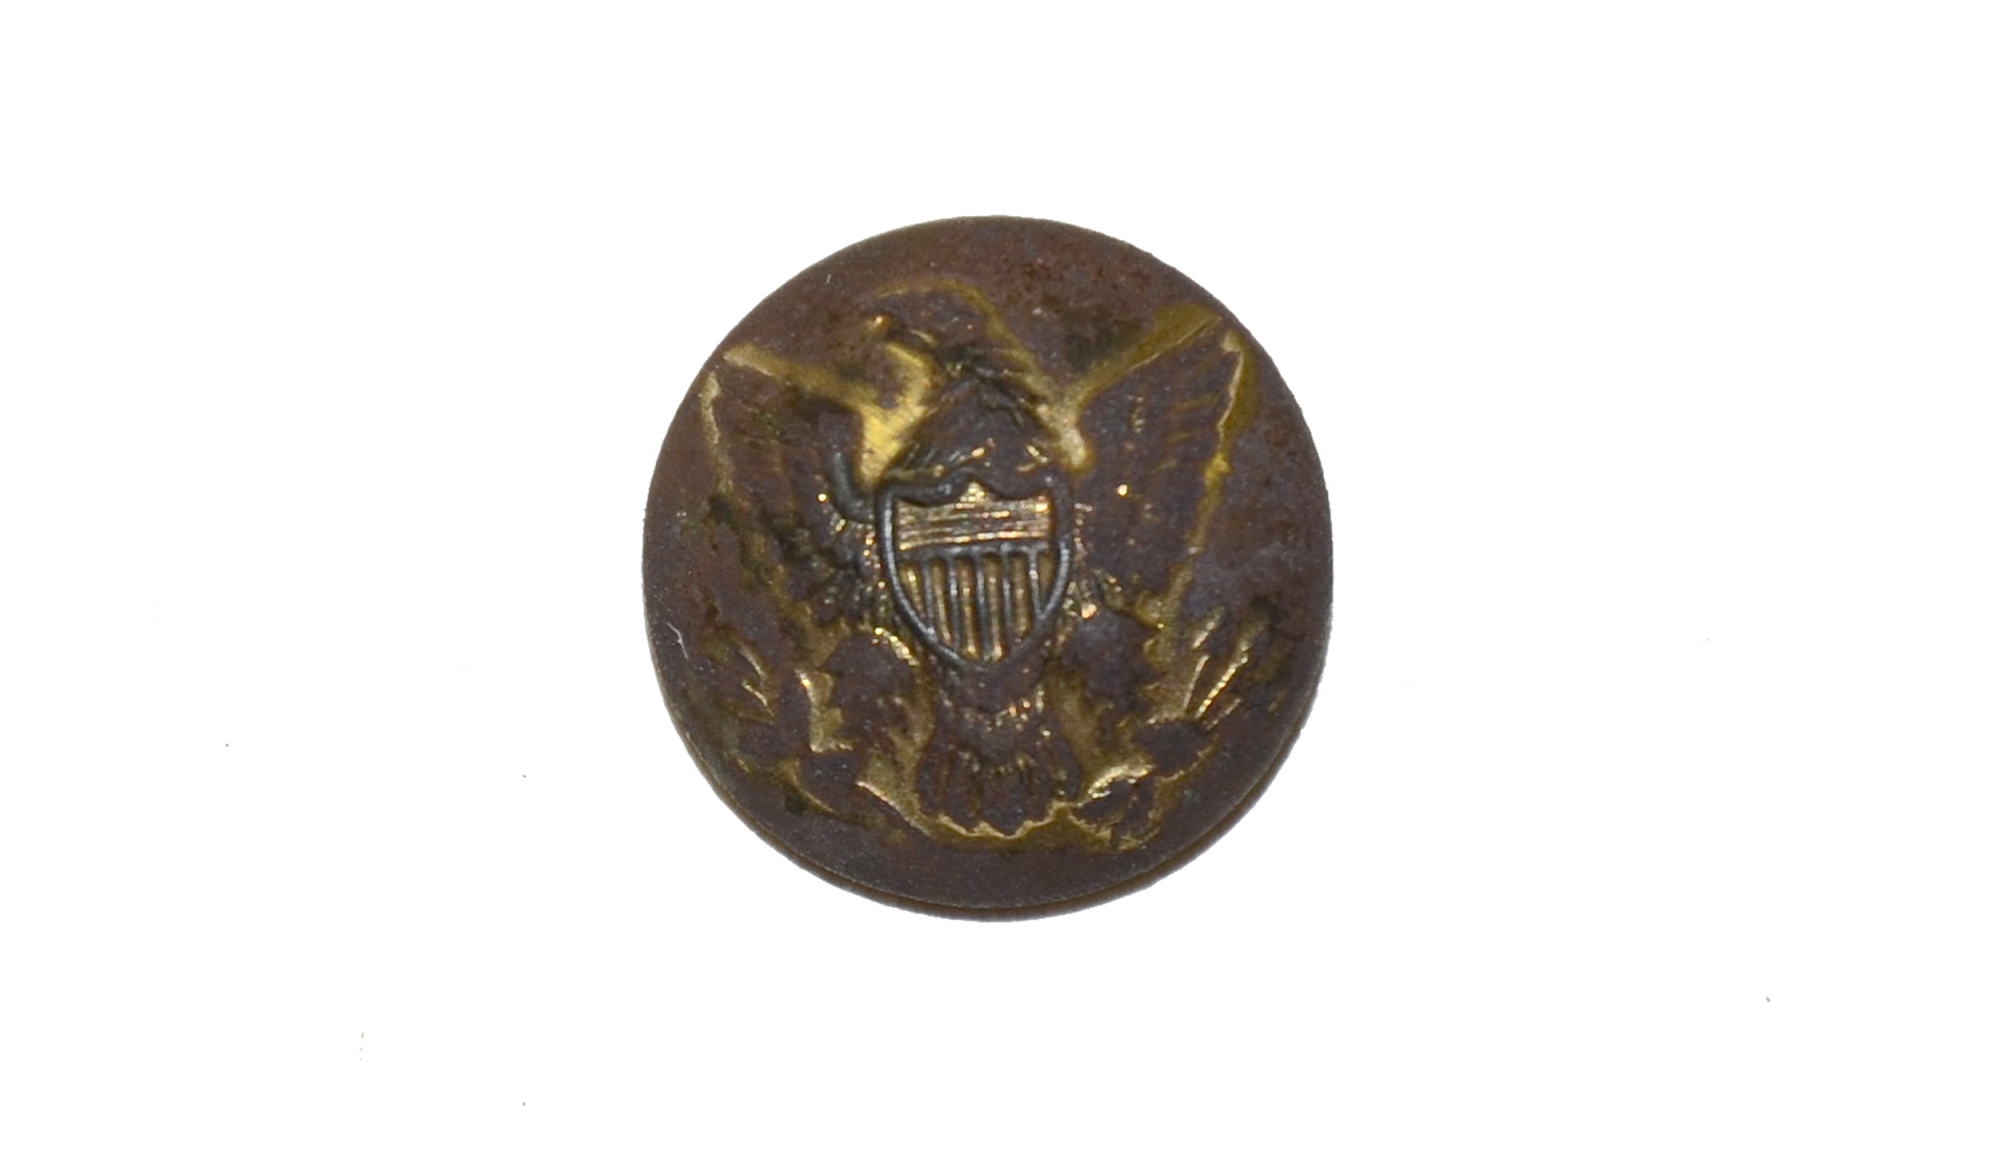 U.S. ENLISTED MAN'S CUFF BUTTON FROM THE GETTYSBURG ROSENSTEEL COLLECTION